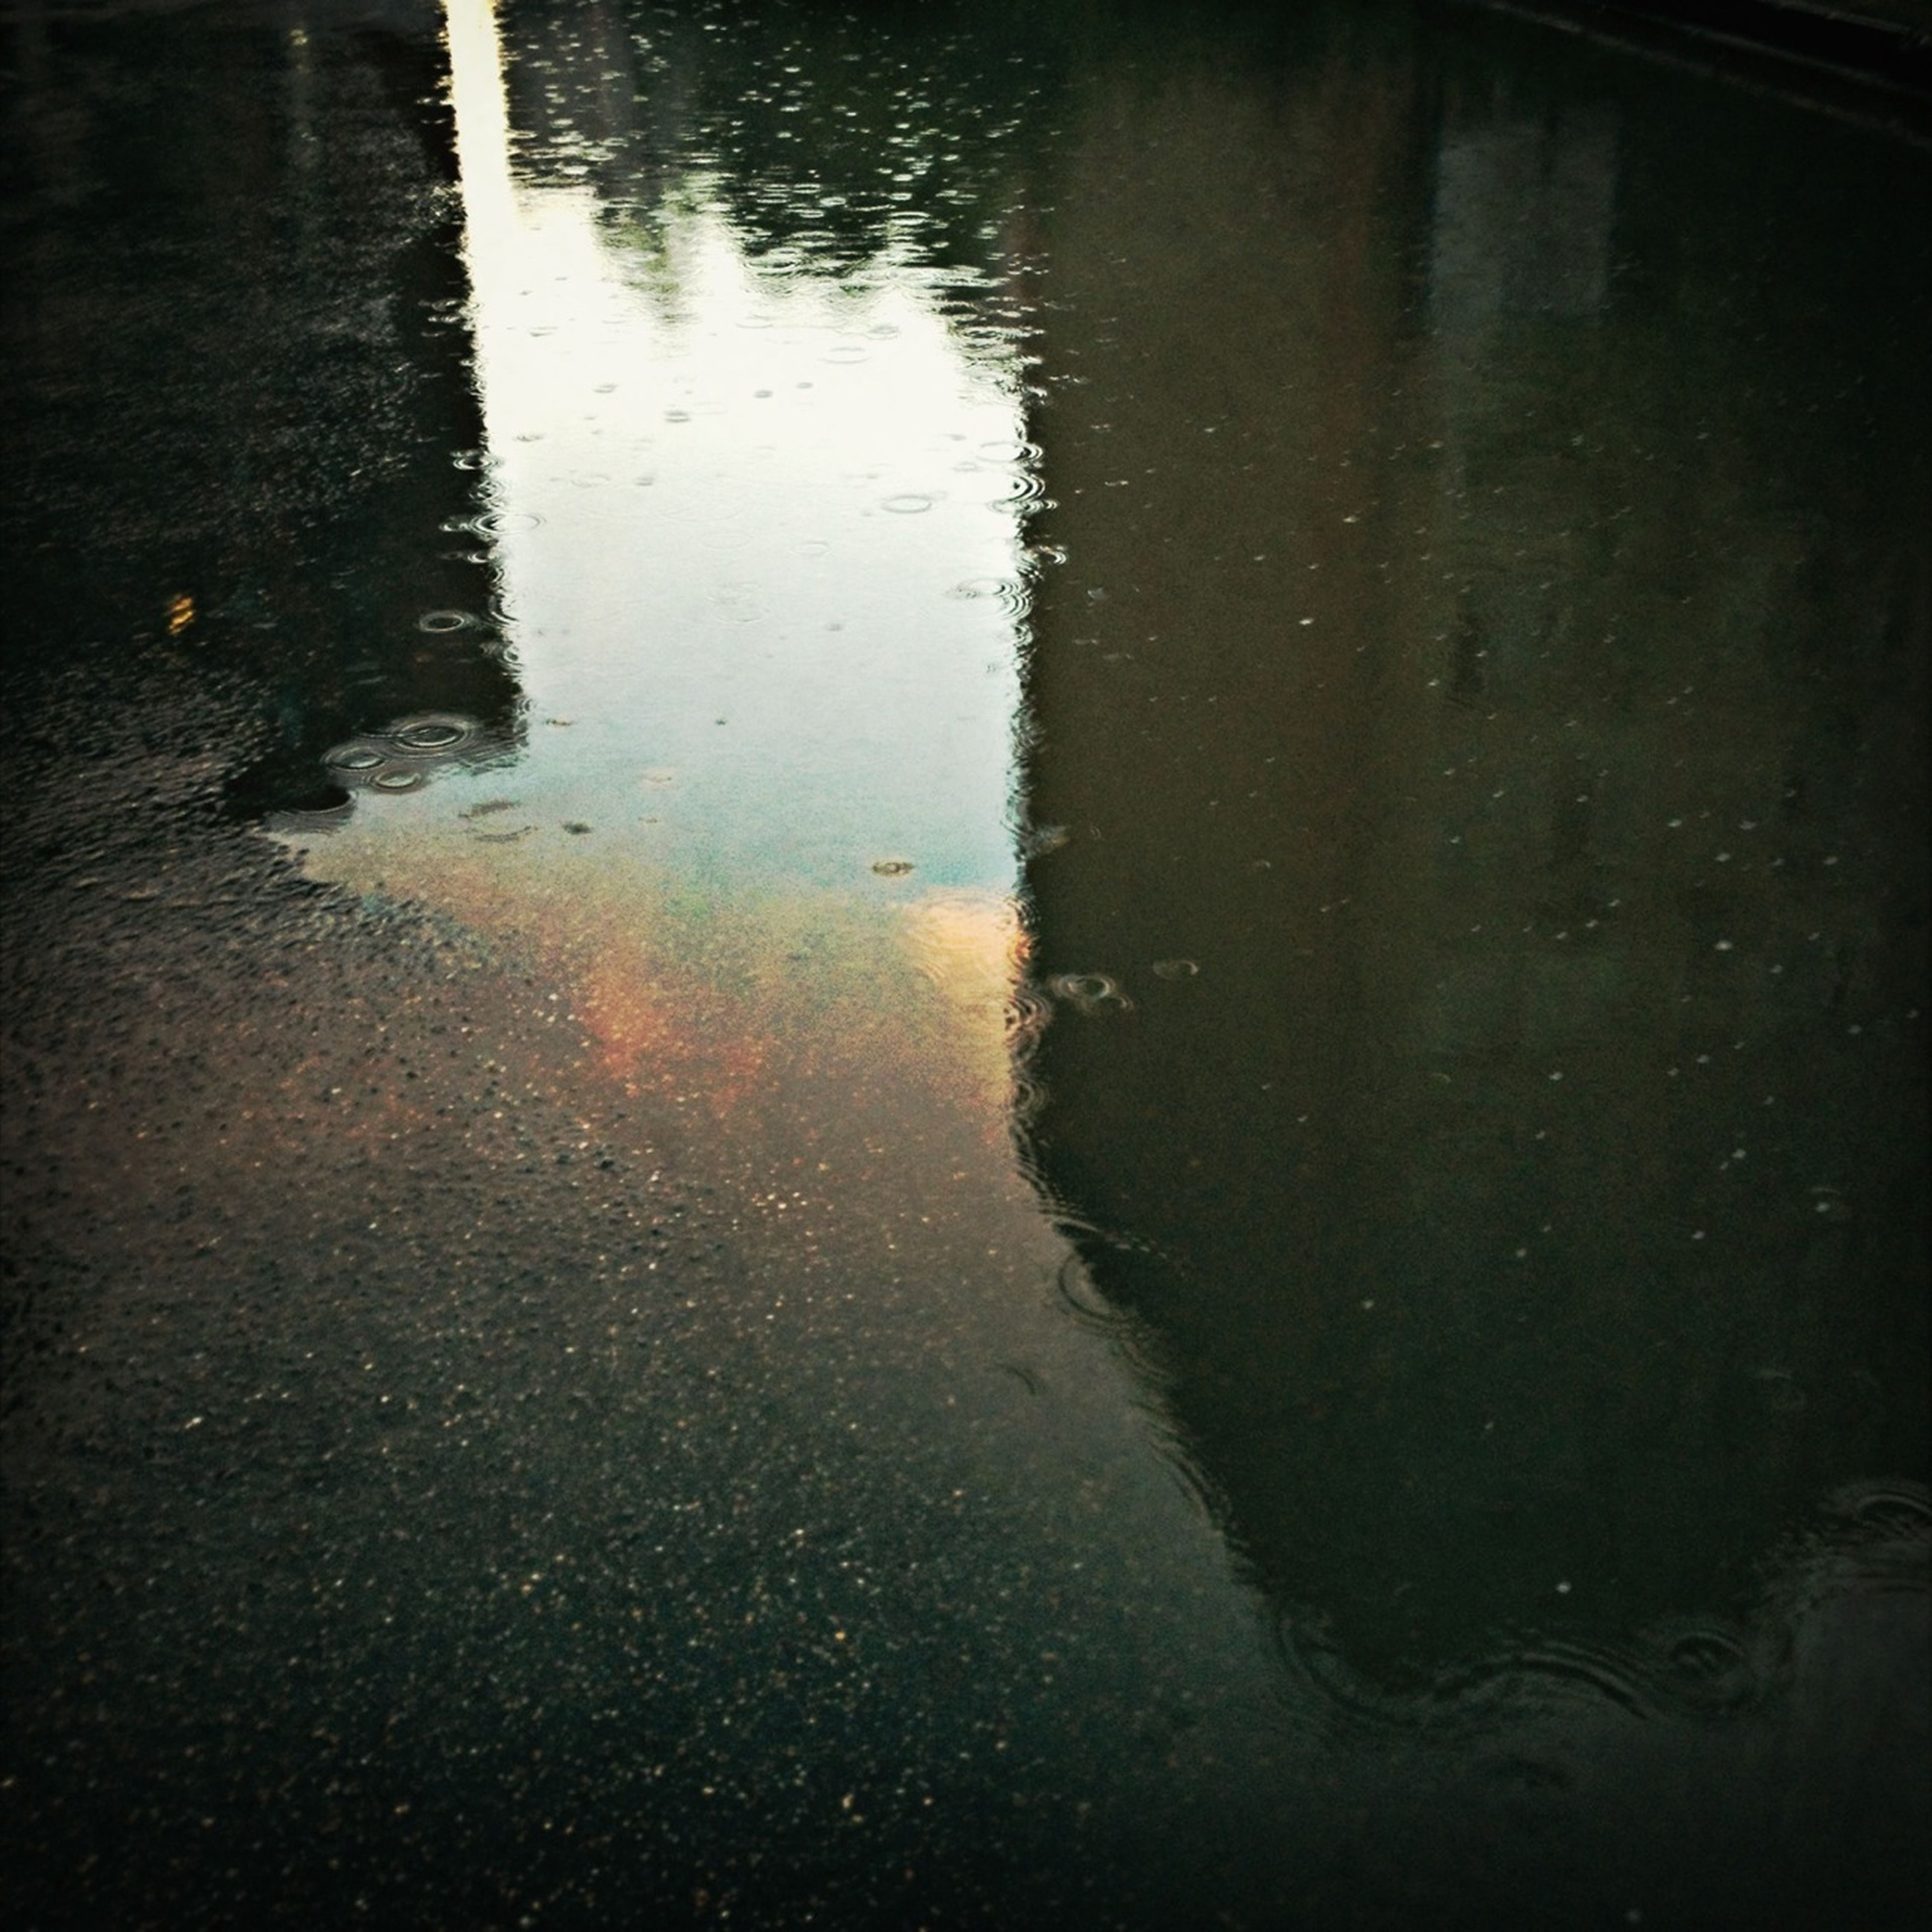 water, reflection, wet, puddle, high angle view, rain, street, transportation, rippled, road, asphalt, lake, waterfront, night, outdoors, no people, nature, river, standing water